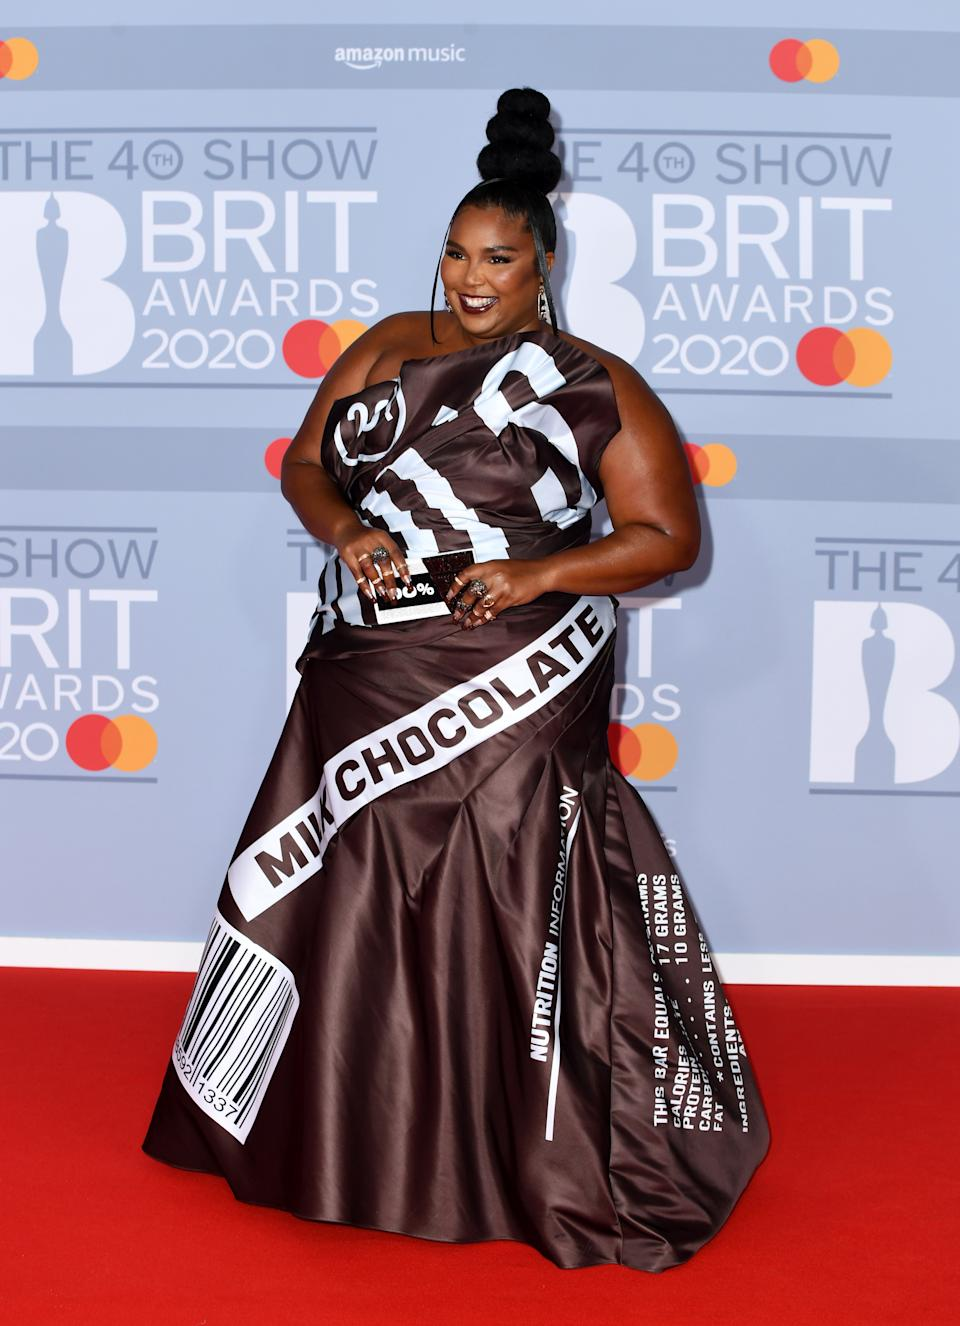 Lizzo wore a chocolate-inspired dress by Moschino to The Brit Awards 2020. (Getty Images)